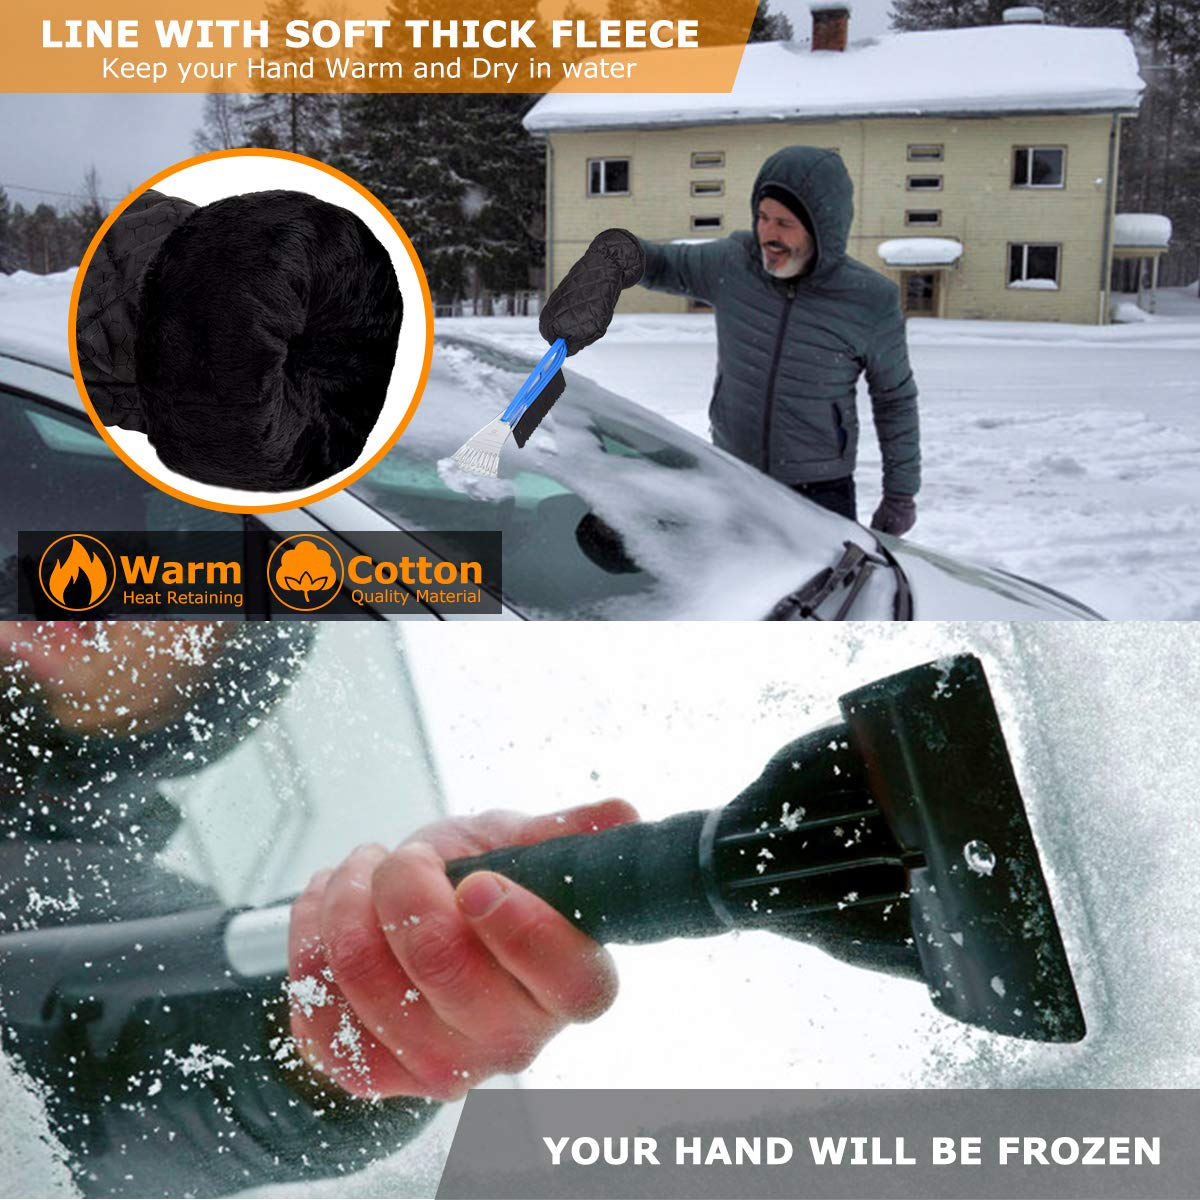 AGOESH Ice Scraper Mitt for Car Windshield with Brush and Scraper Thick Fleece /& Waterproof and Works Best on Any Size Vehicle Lightweight Tough Durable Scratch-Free